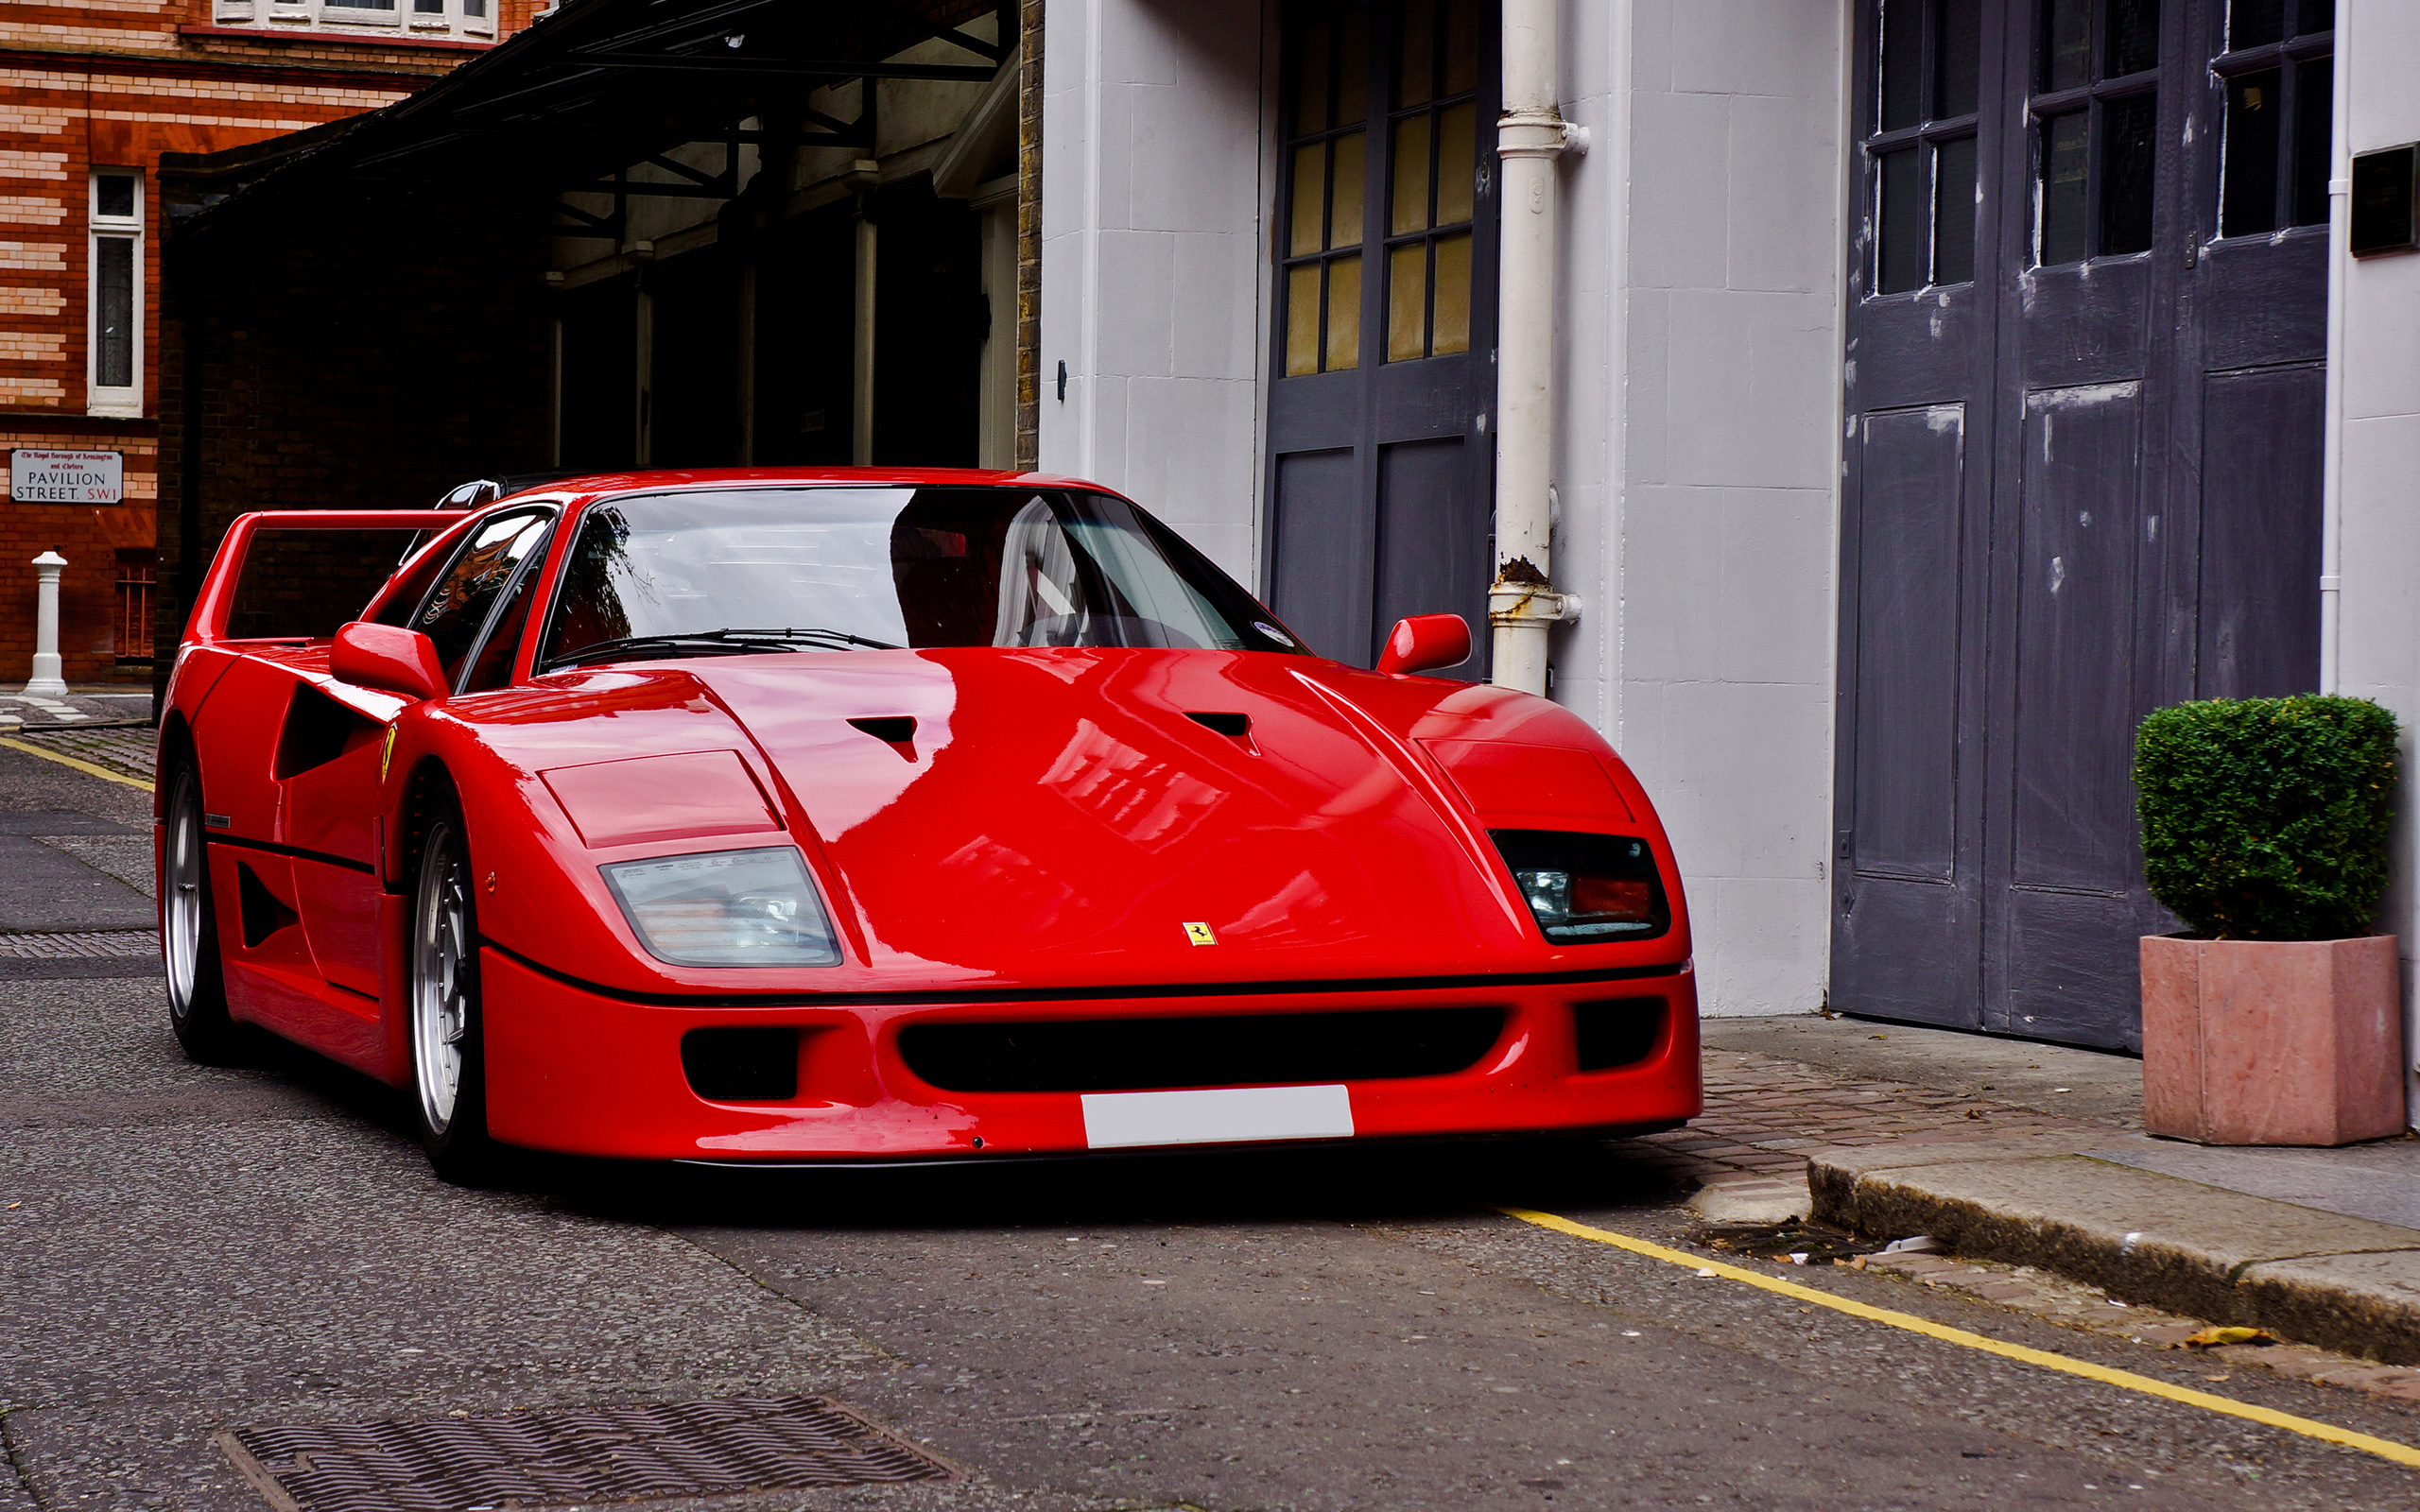 ferrari-f40-wallpapers-32109-3288127